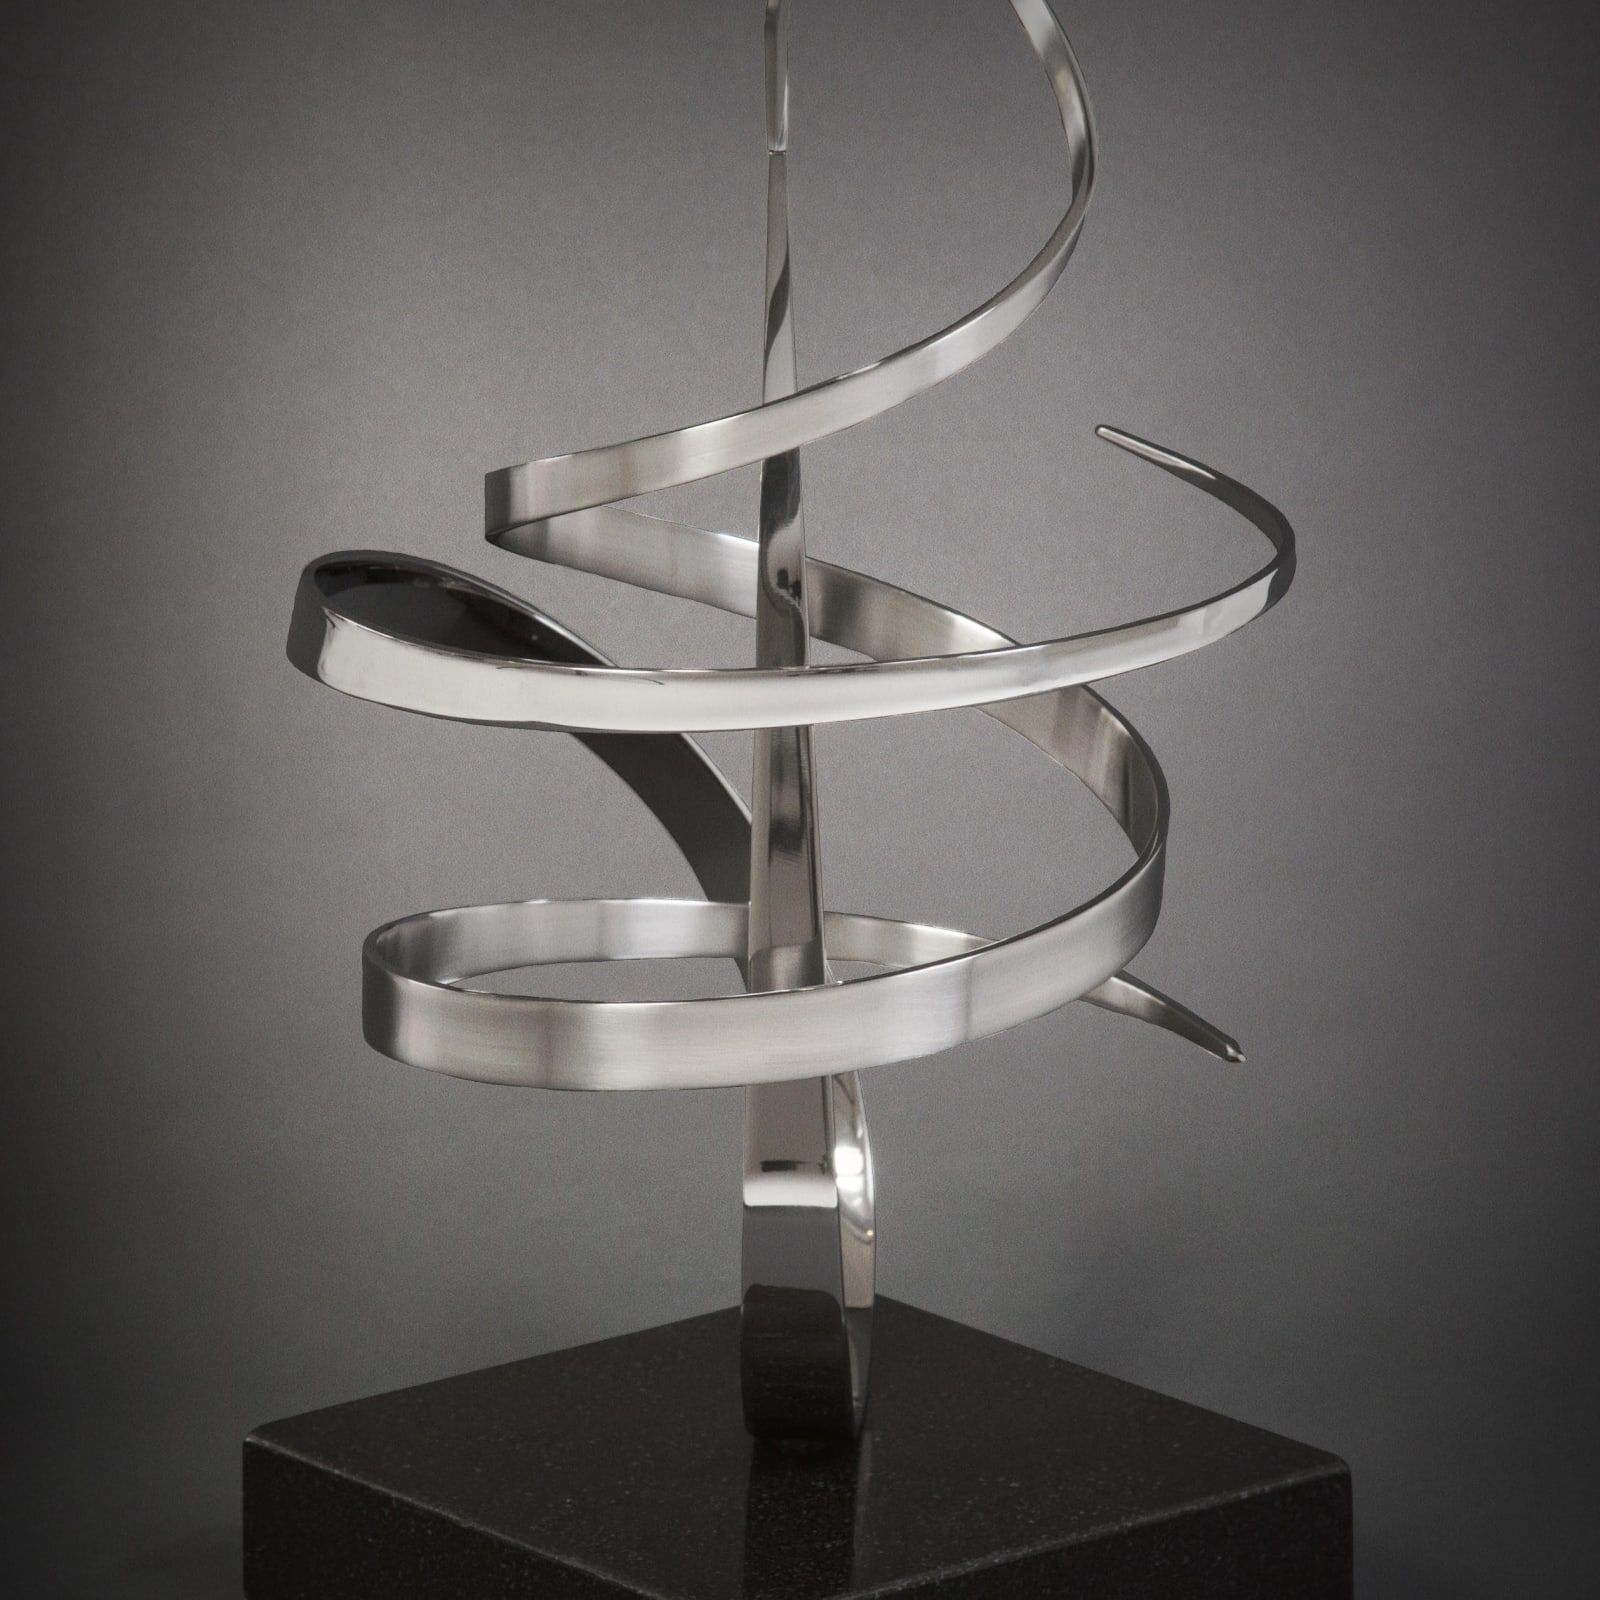 Gary Traczyk ORBIT Stainless Steel on Granite